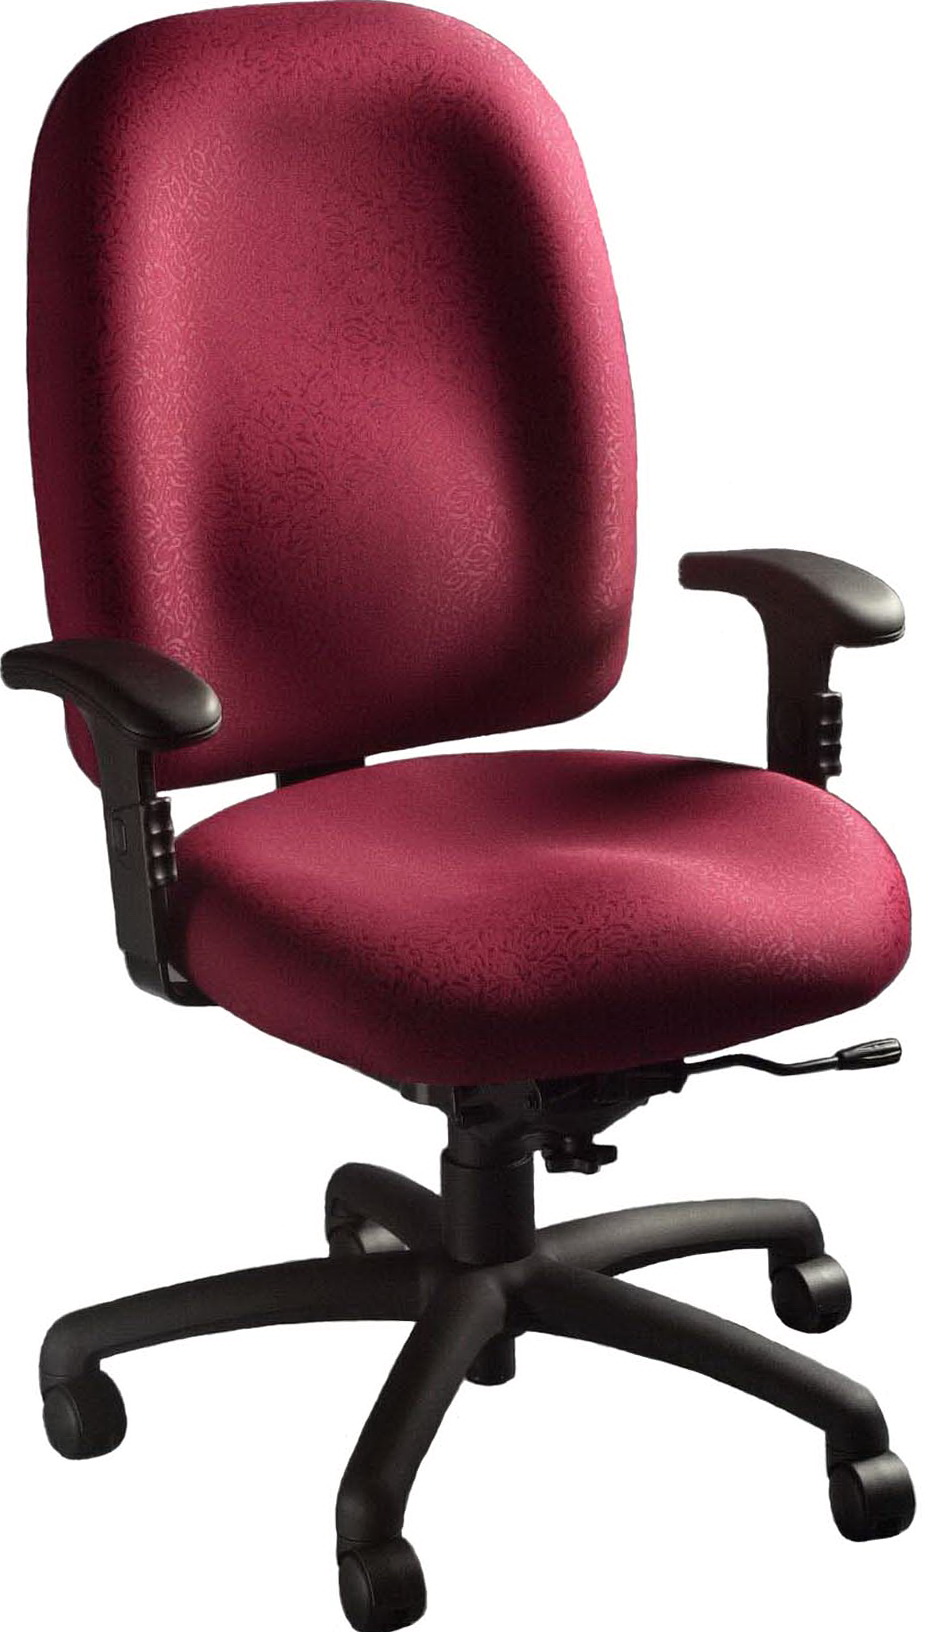 Most Comfortable Office Chair Cheap